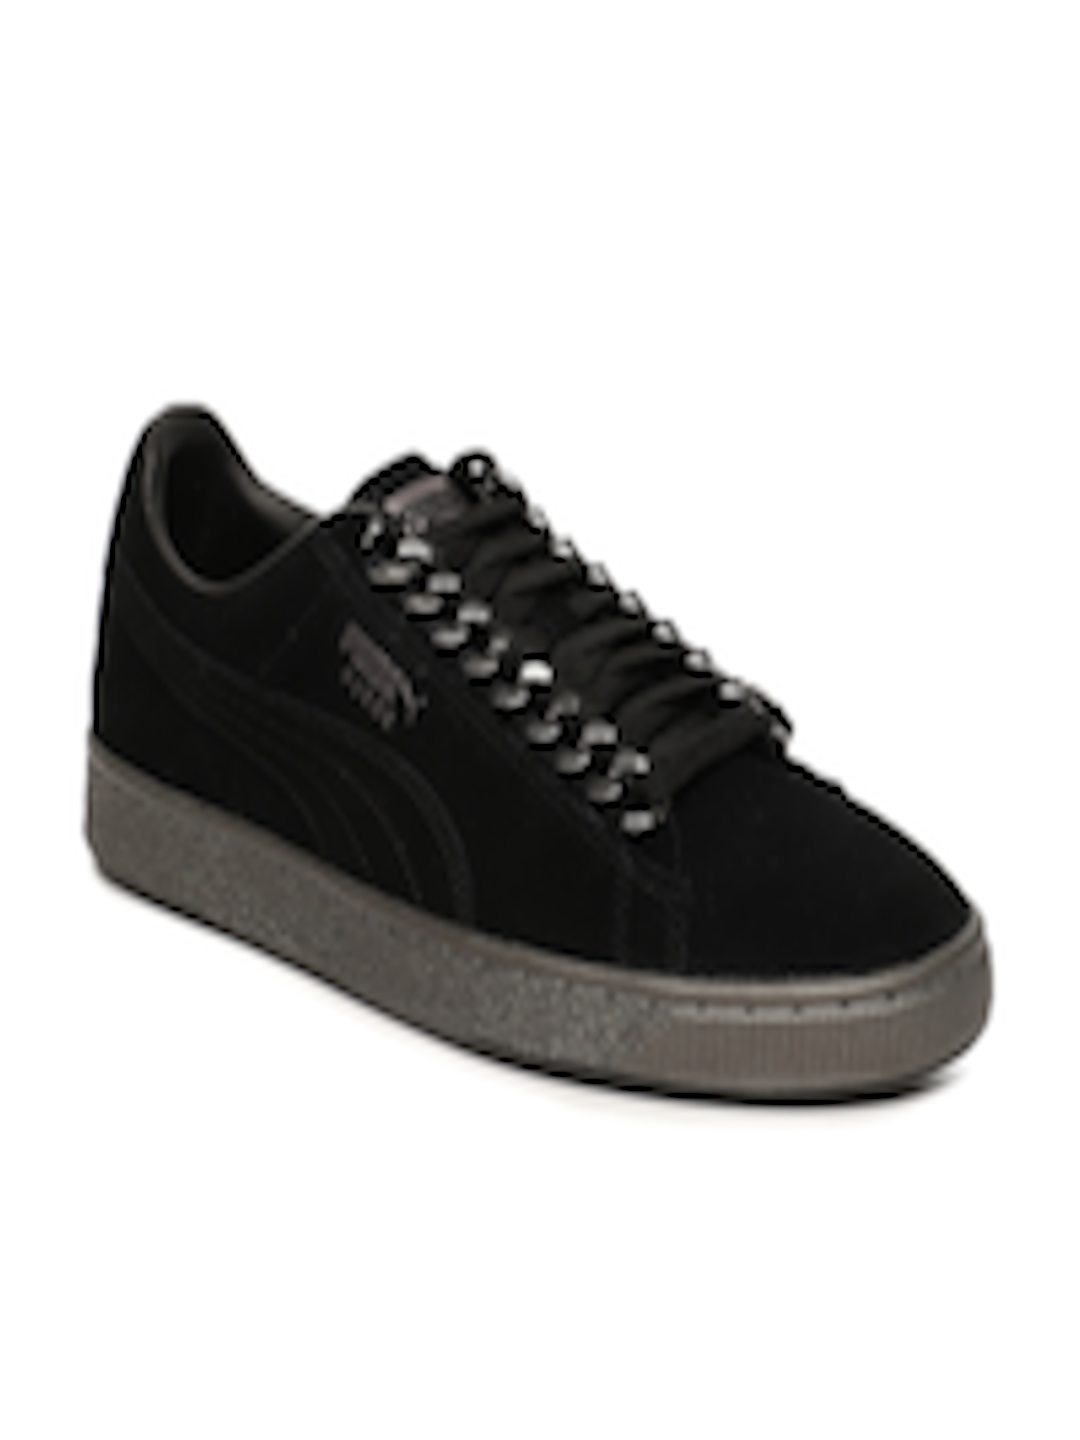 sports shoes f480a f5f24 Buy Puma Men Black Suede Classic X Chain Sneakers - - Footwear for Men